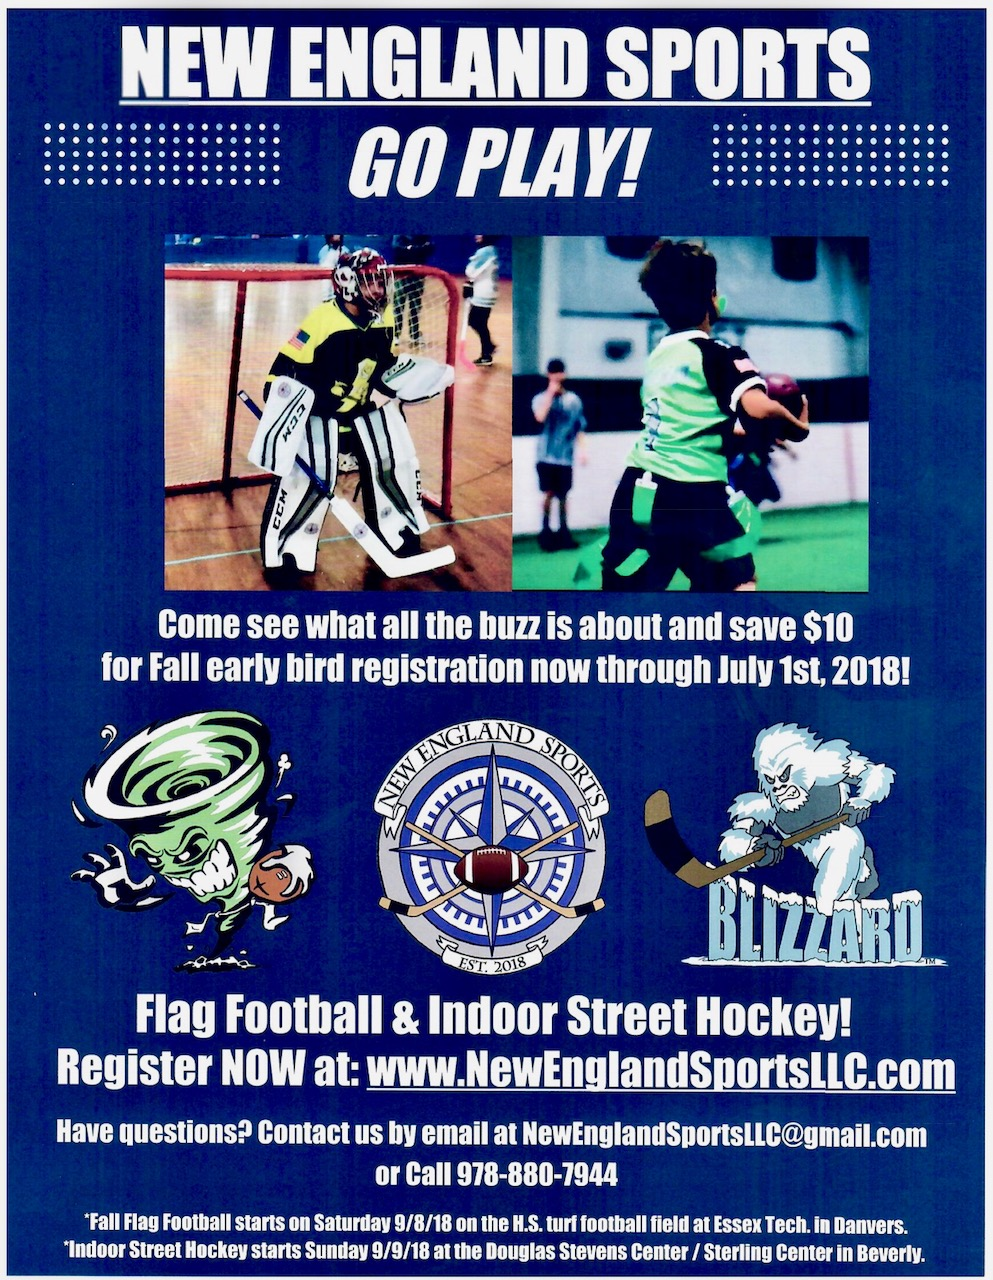 New England Sports Llc Launches New Sports League In Areas North Of